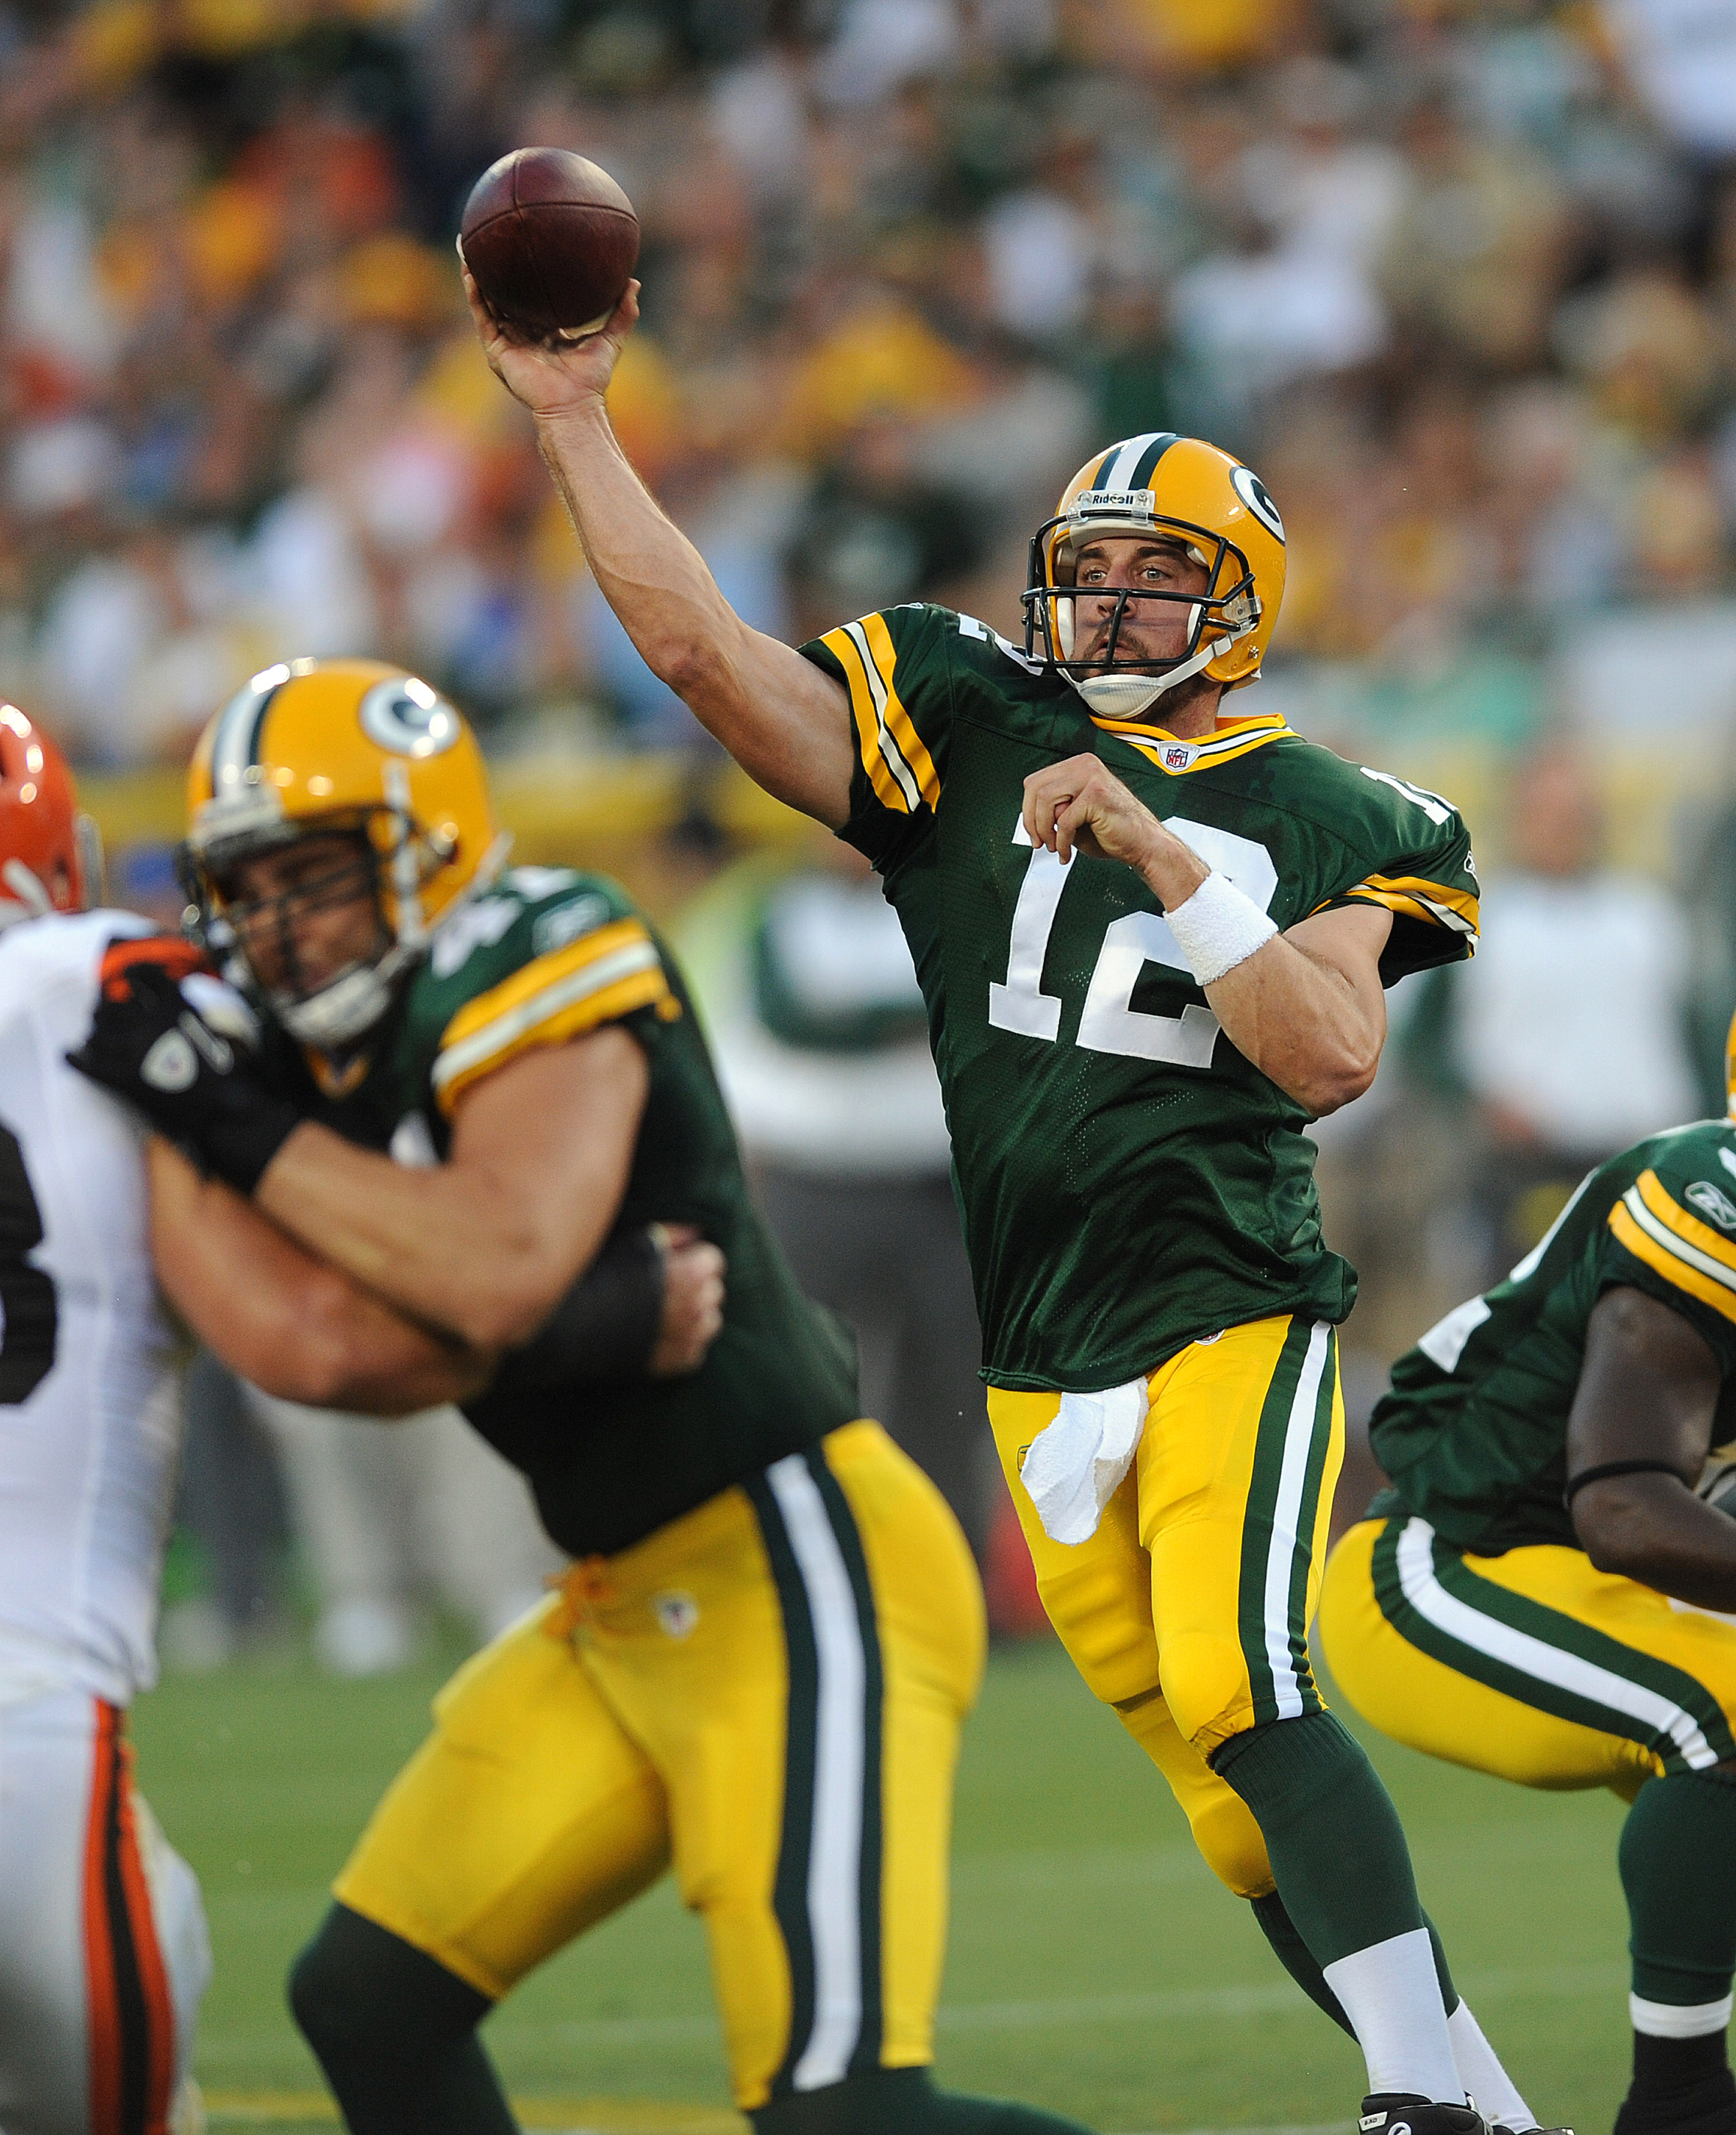 Mr. Rodgers is still second Fiddle to the man in the Wranglers